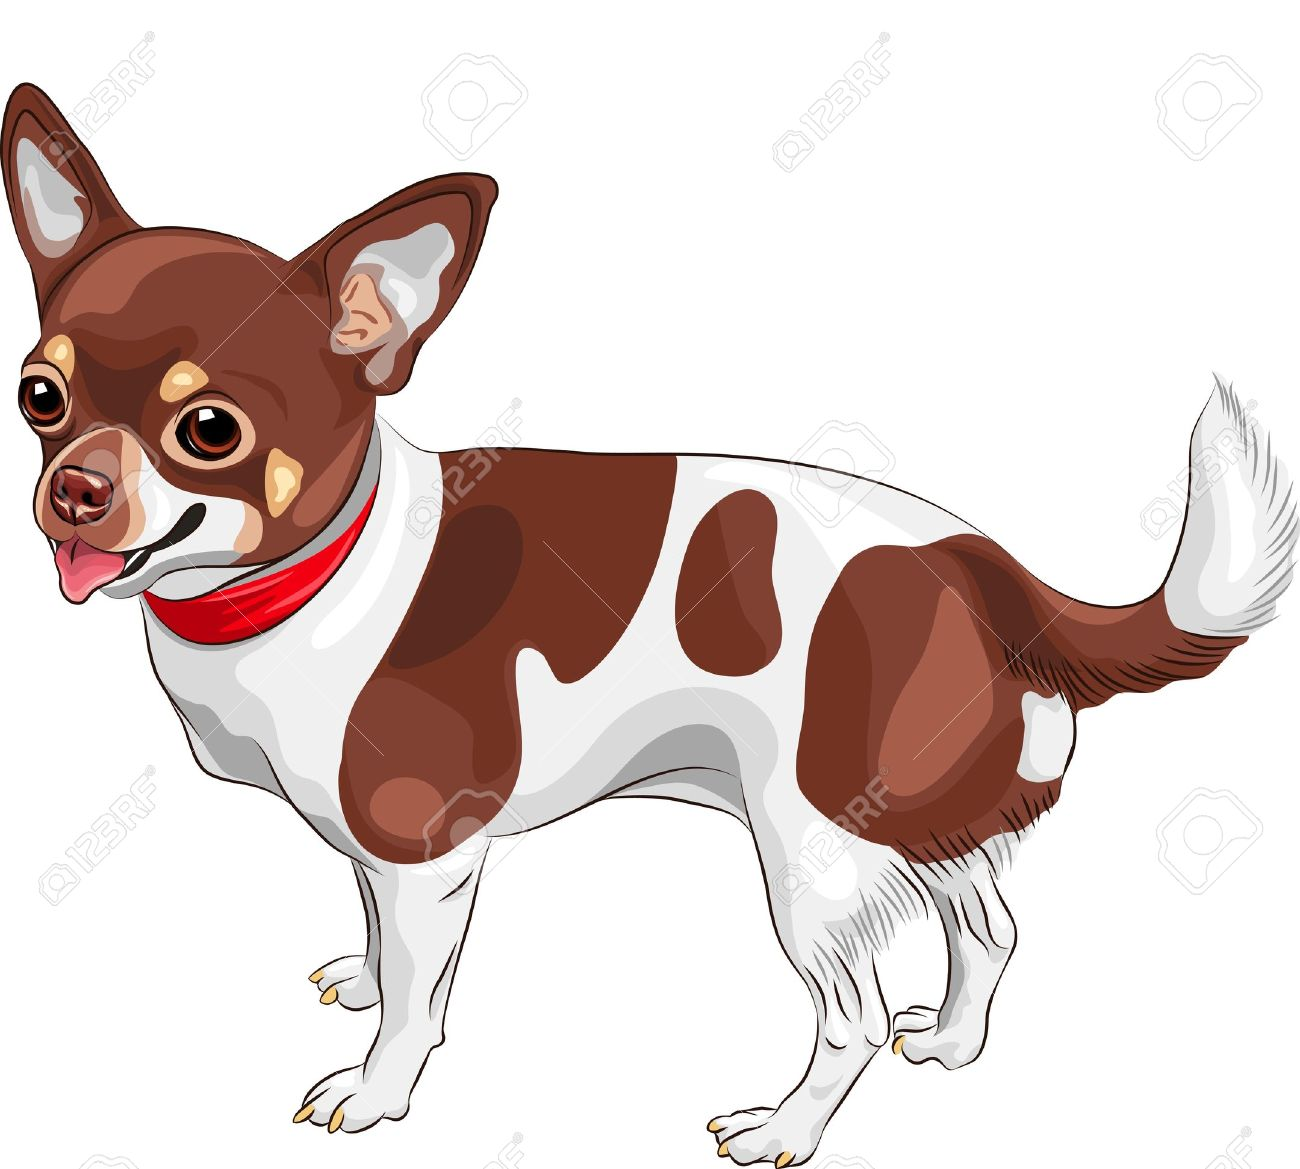 color sketch of the cute dog Chihuahua breed smiling Stock Vector - 15357484